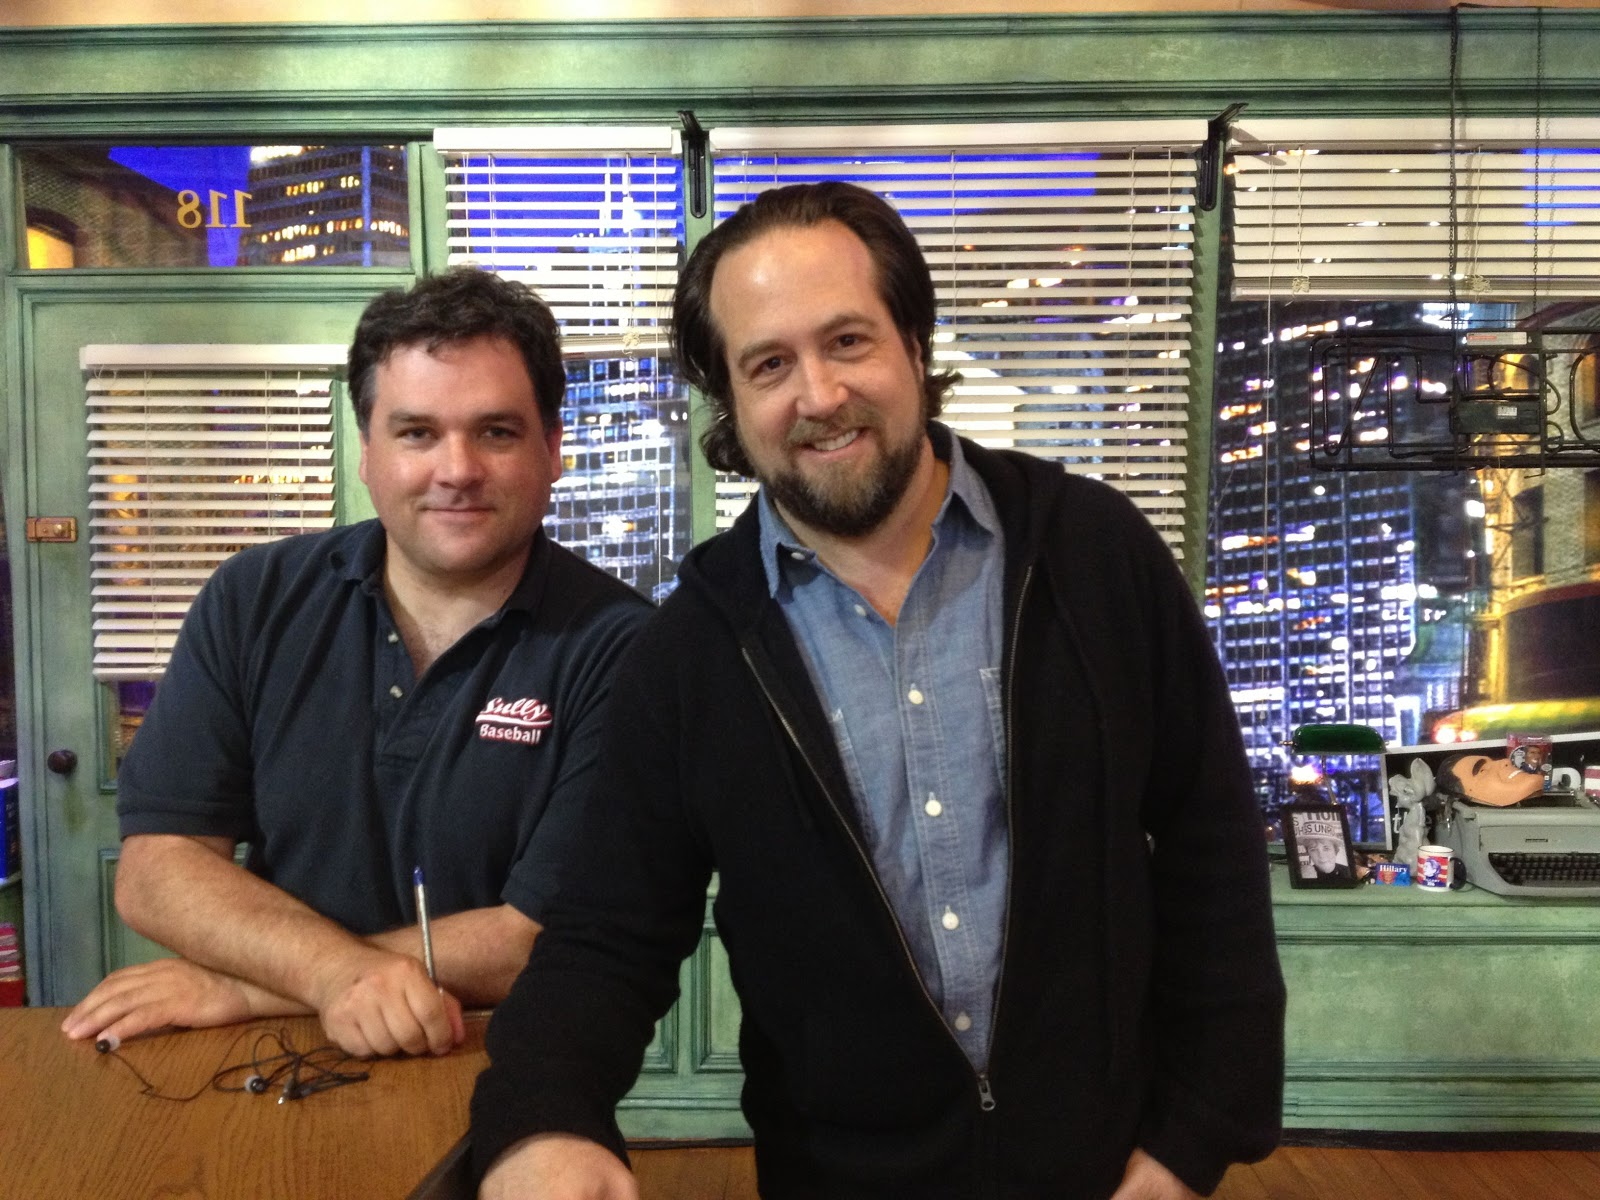 Michael Shure The Host Of Current TVs War Room Was My Guest On Sully Baseball Daily Podcast Today